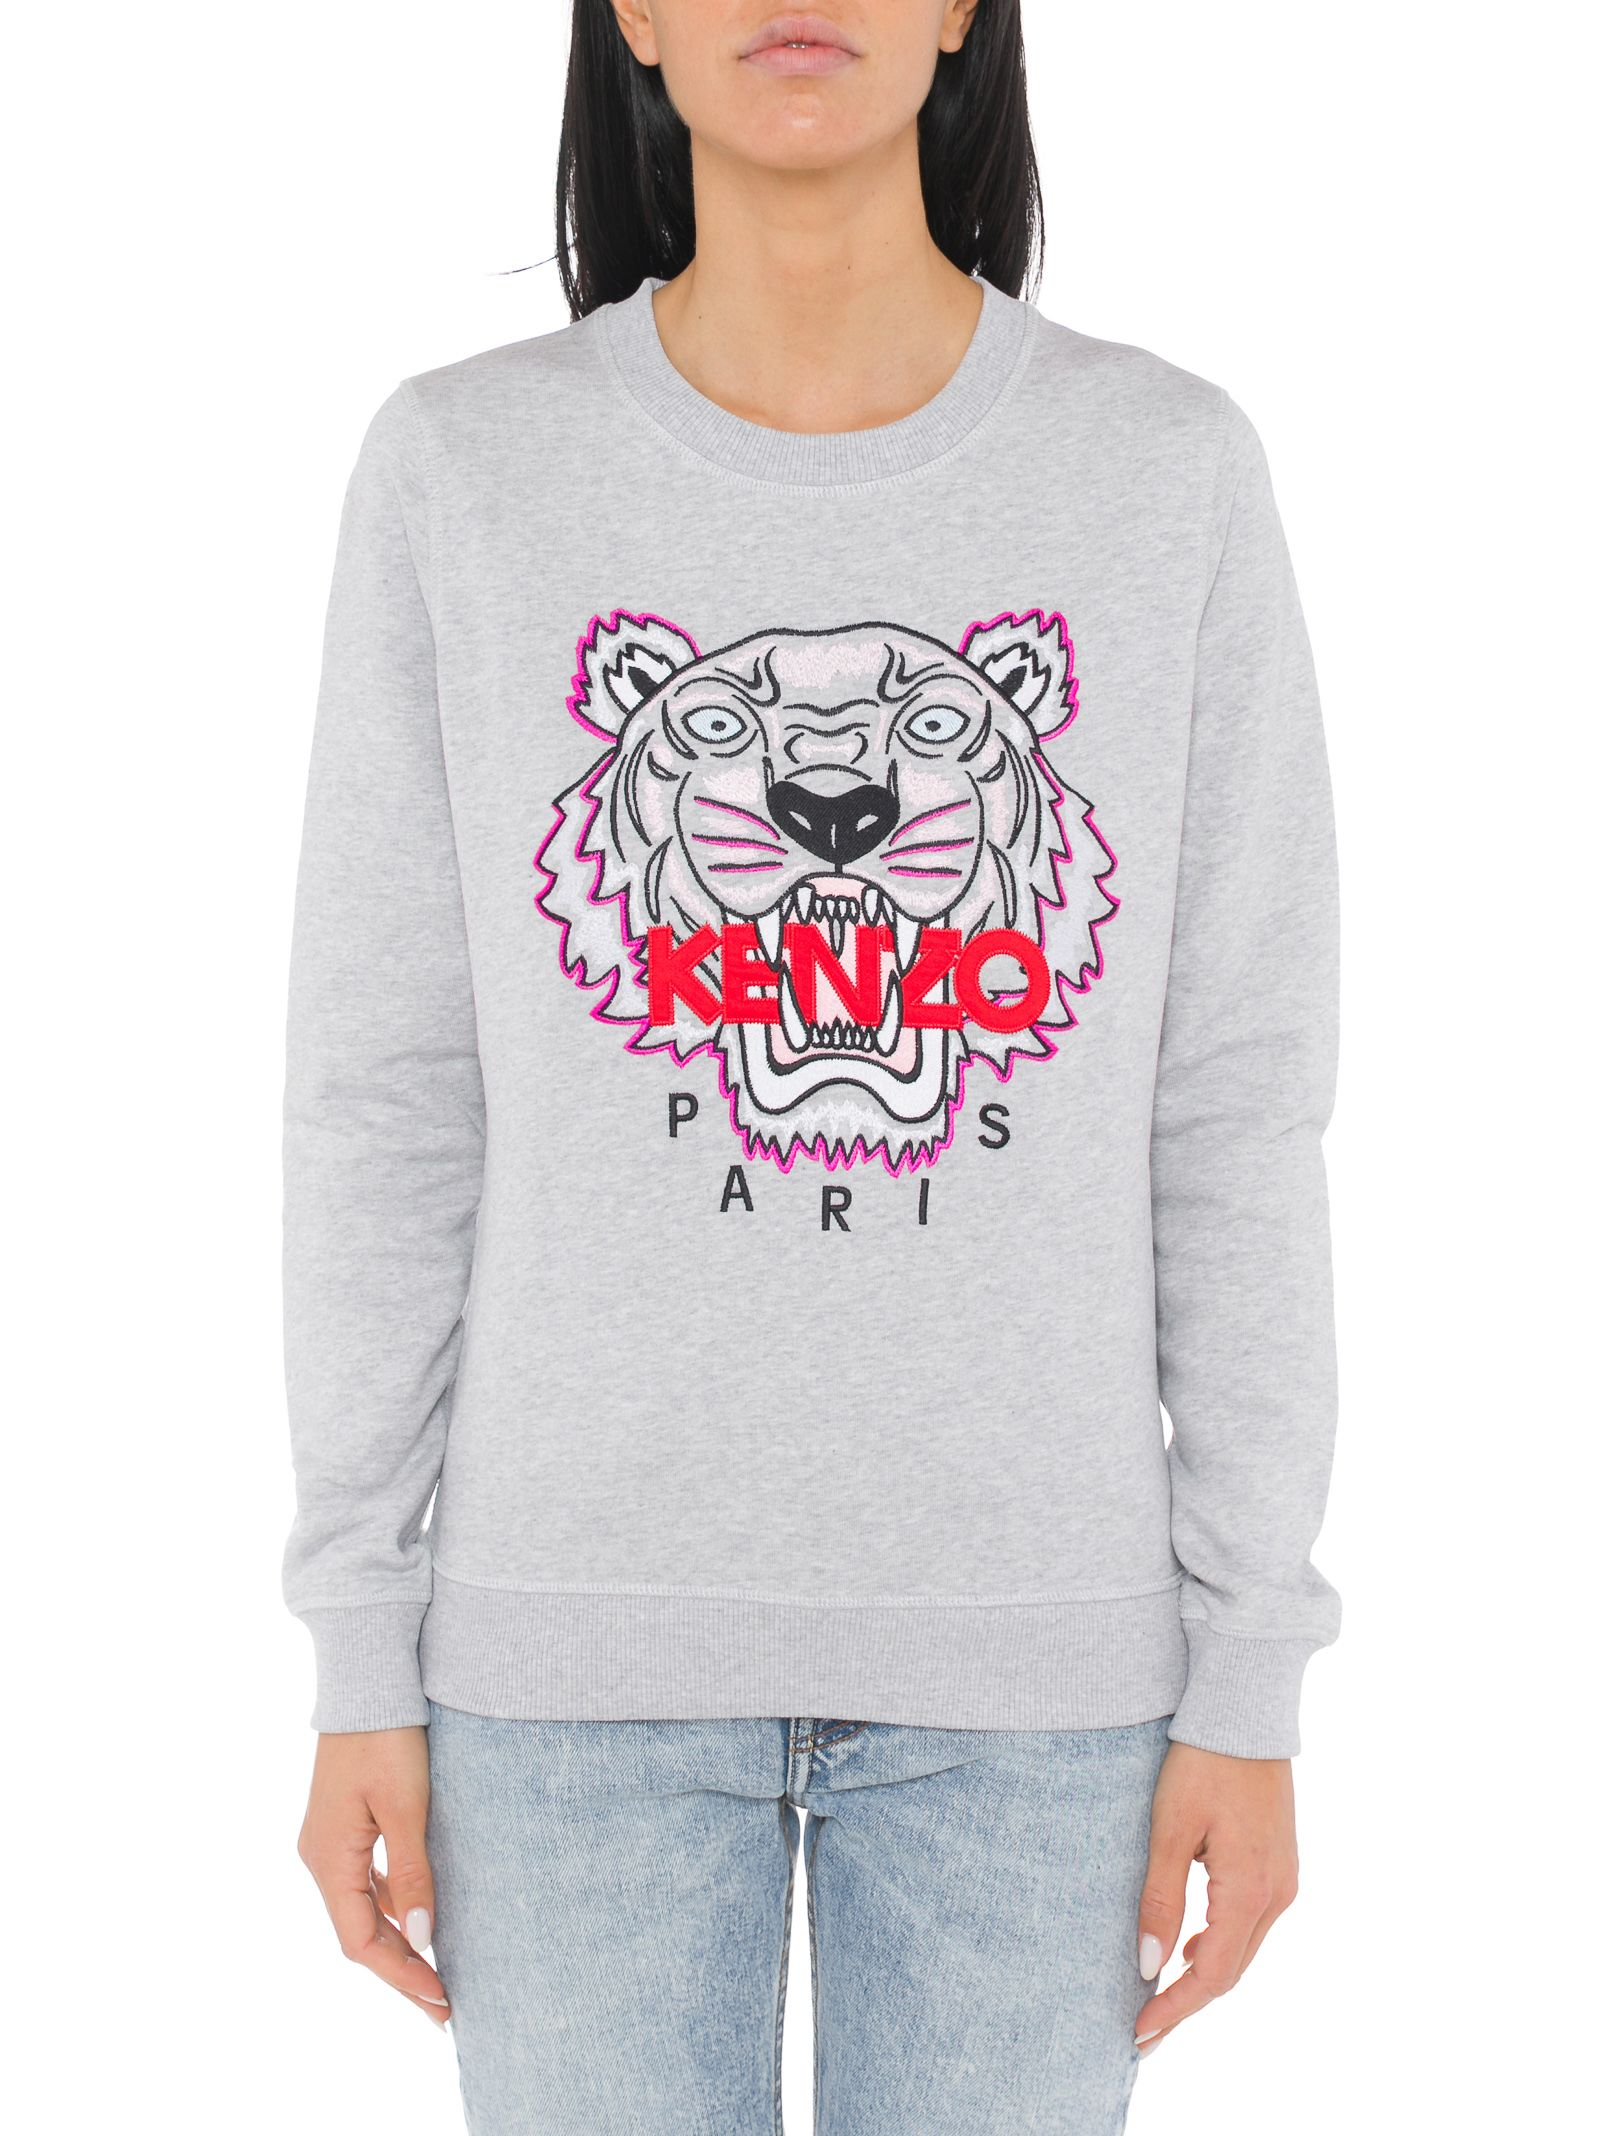 2837fbed Shop Kenzo Sweatshirt on sale at the Marie Claire Edit